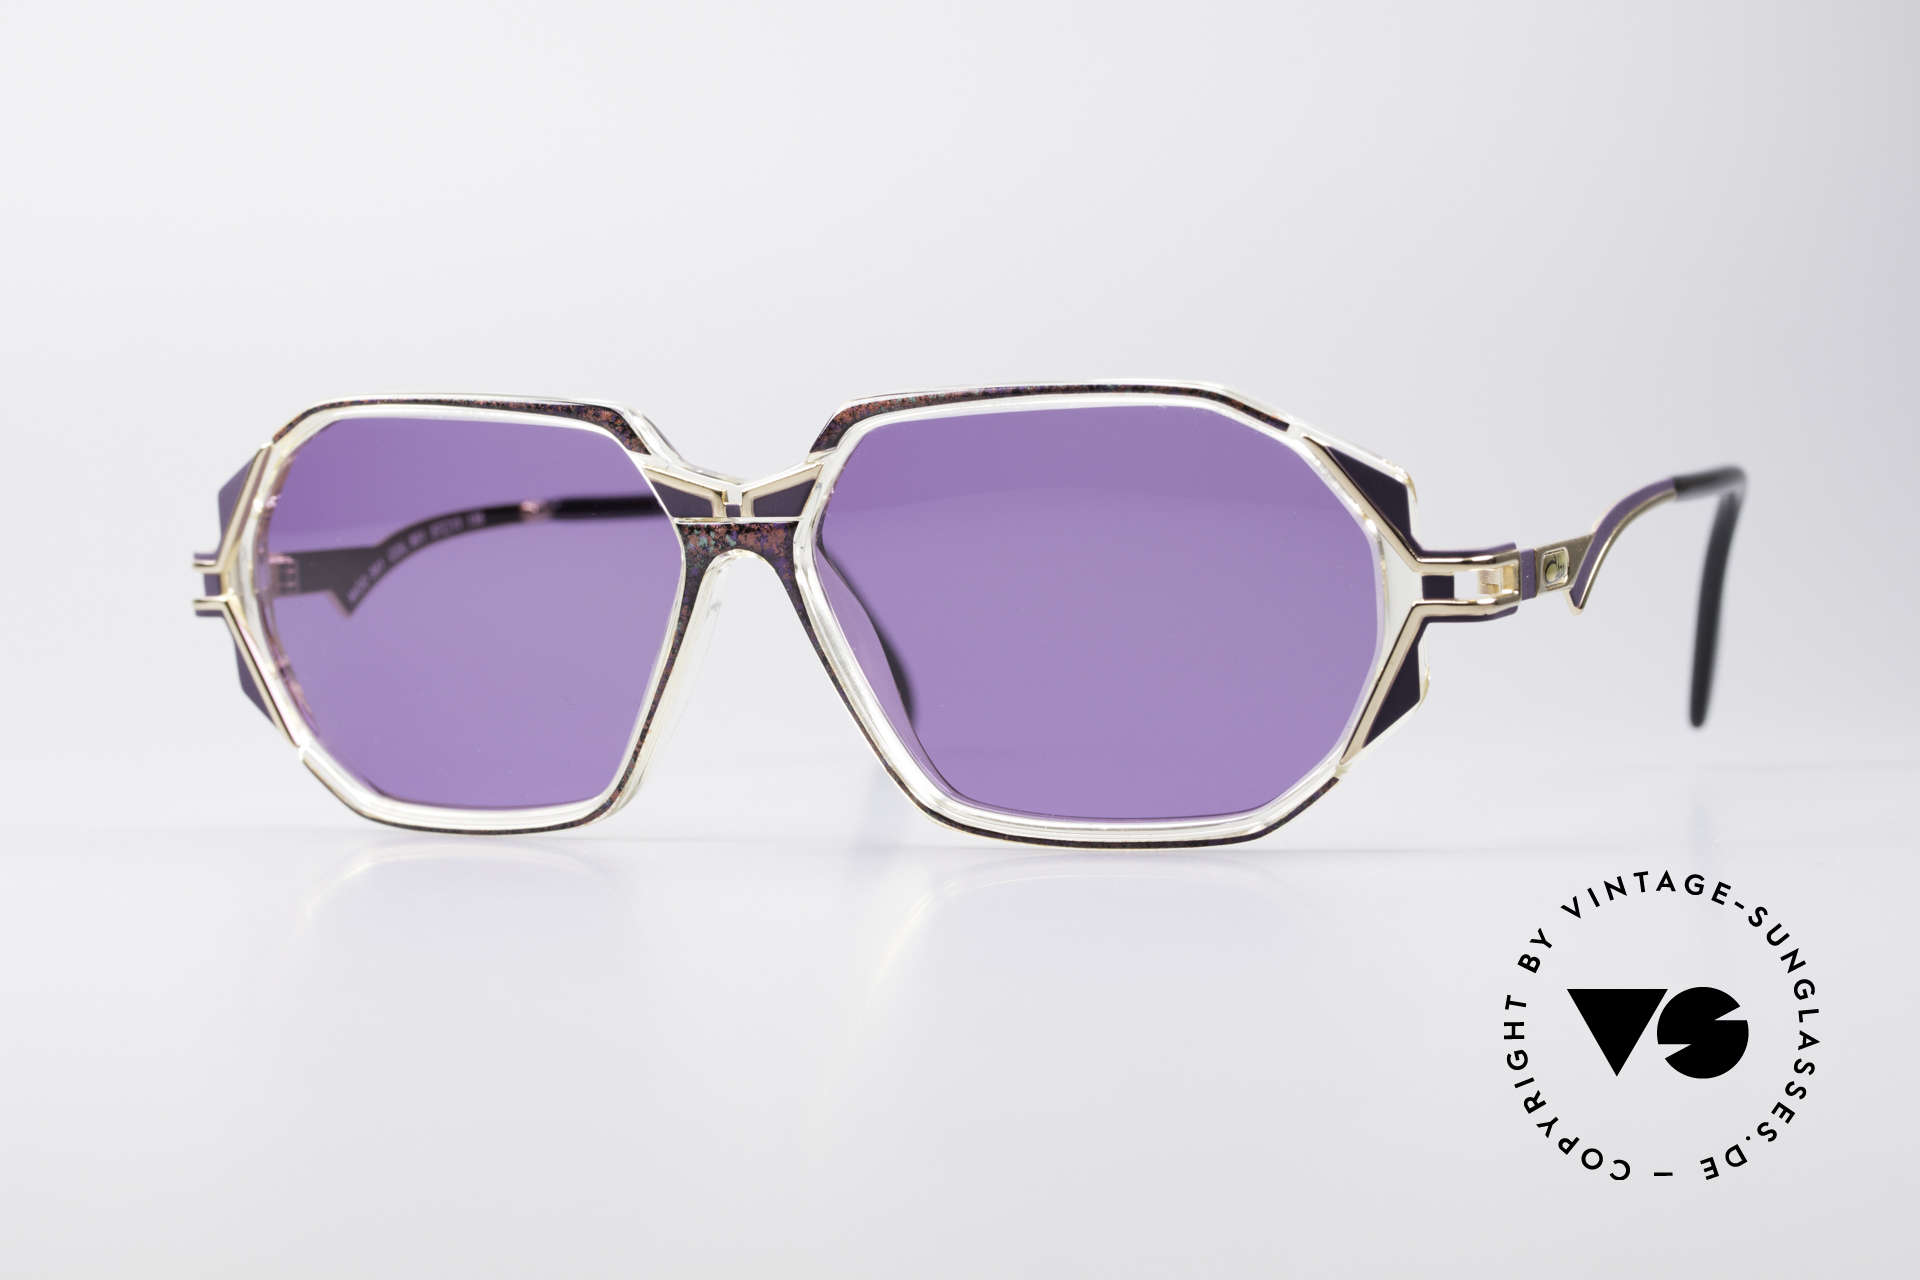 Cazal 361 Original 90's Sunglasses, adorned CAZAL sunglasses from the early / mid 1990's, Made for Women